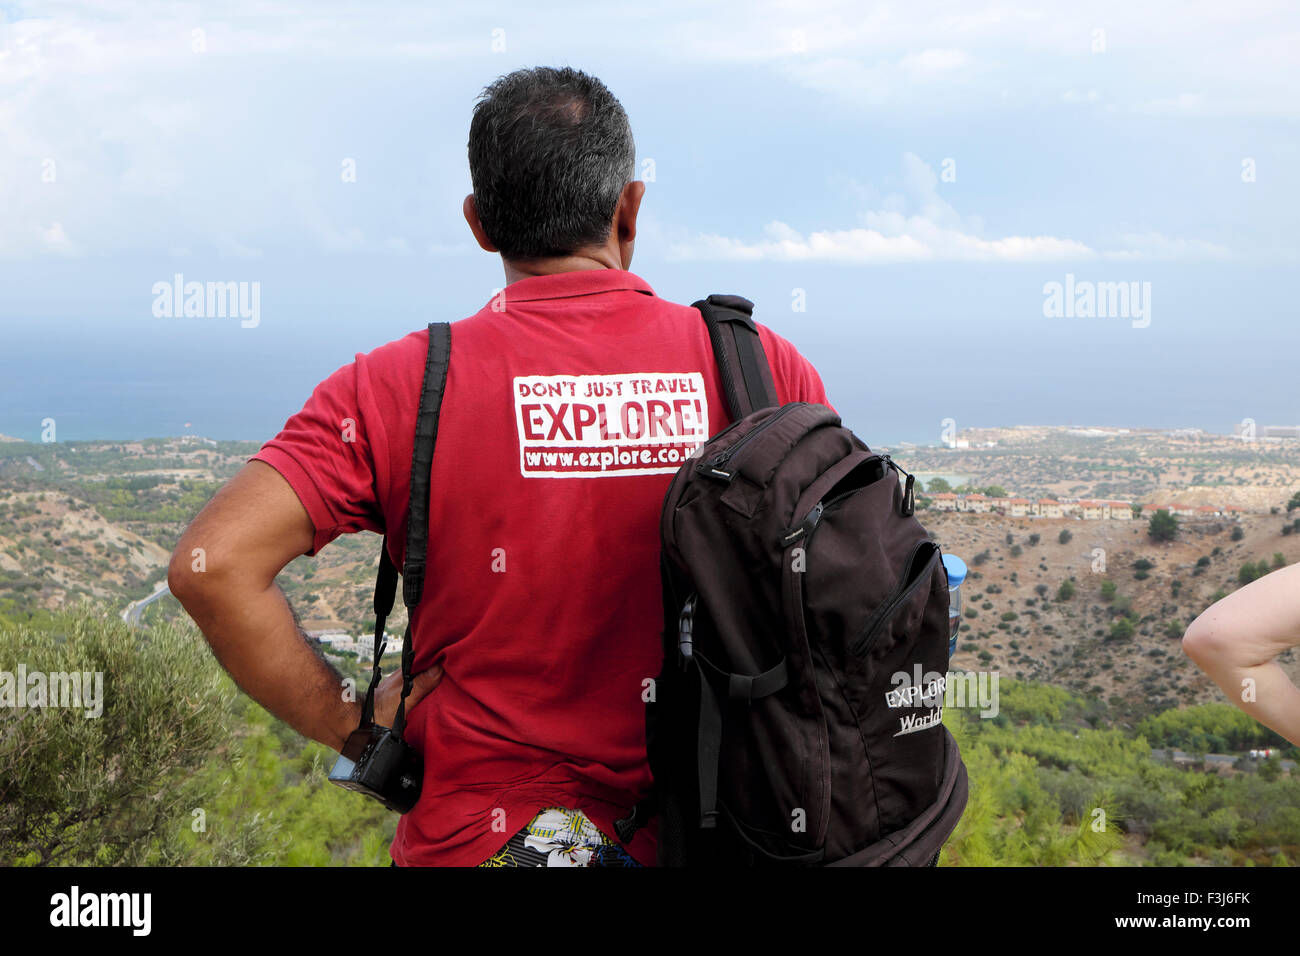 Rear view of an Explore travel guide in red tshirt surveying the landscape in North Cyprus  KATHY DEWITT Stock Photo